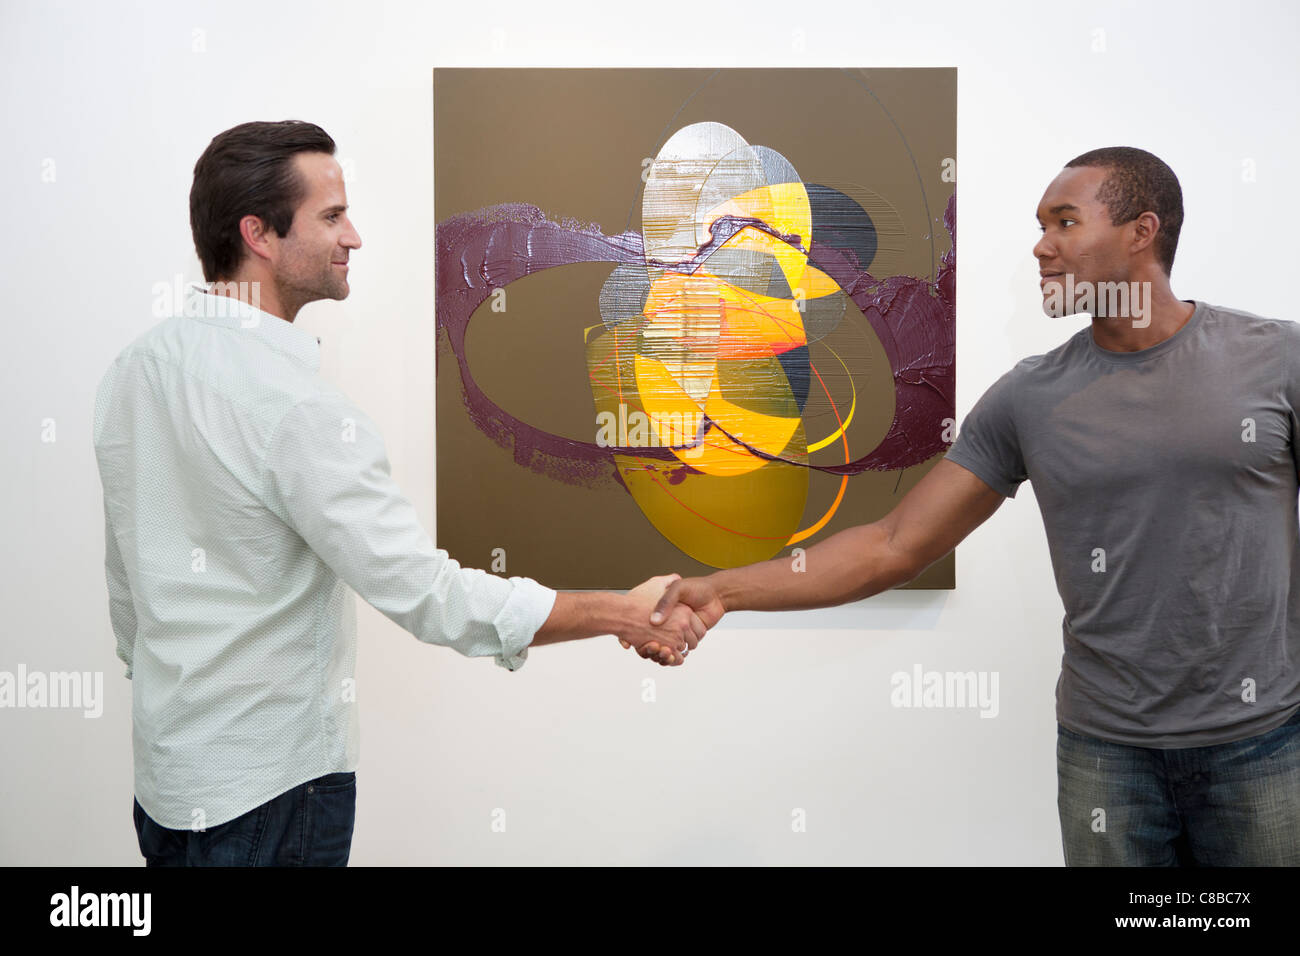 Two man in casuals shaking hands in front of wall painting - Stock Image